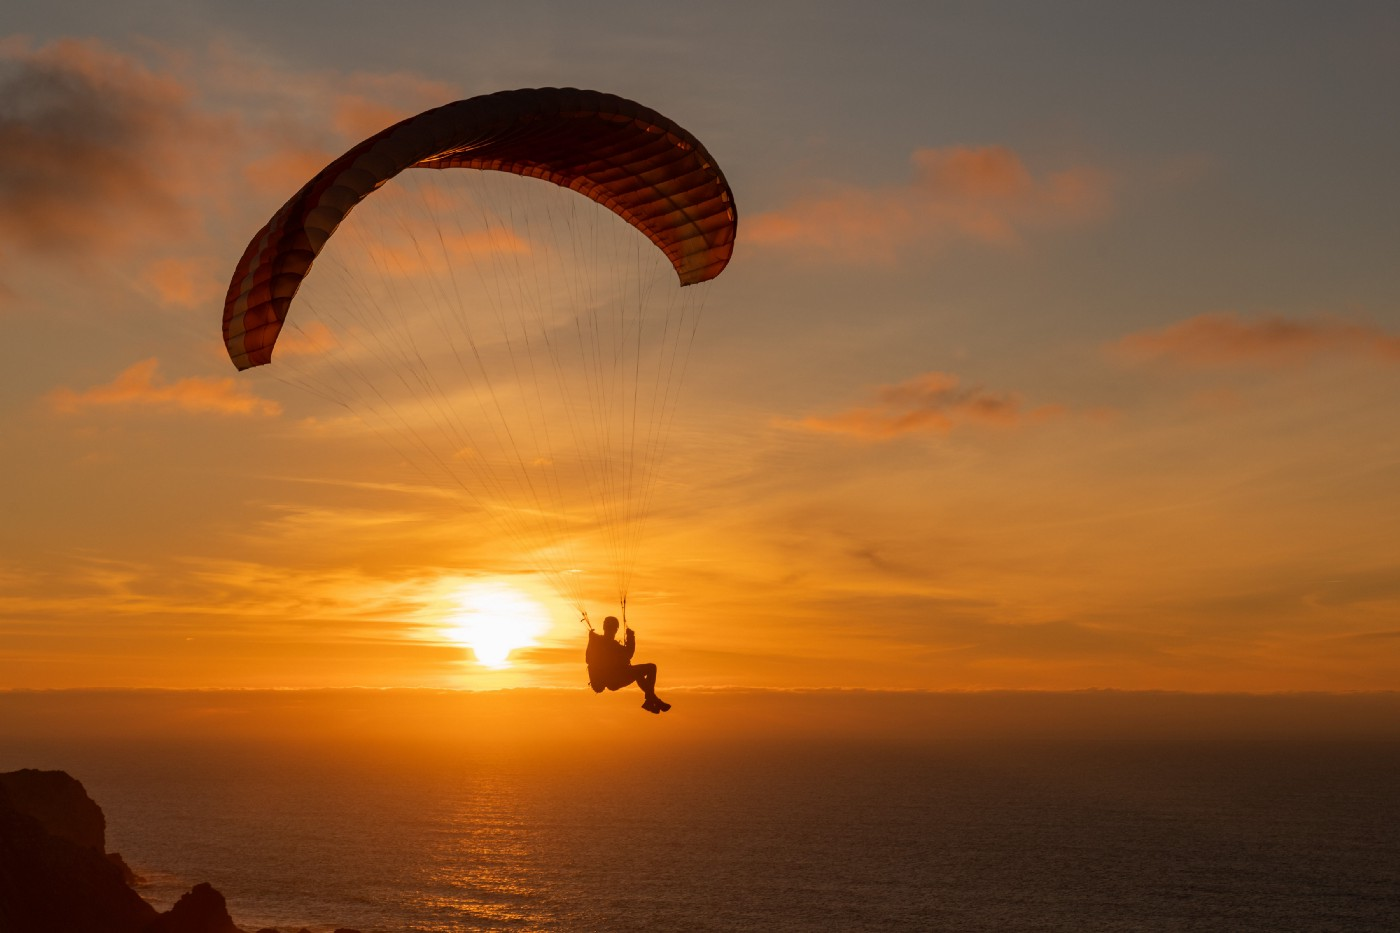 A man paragliding over a sea at sunset